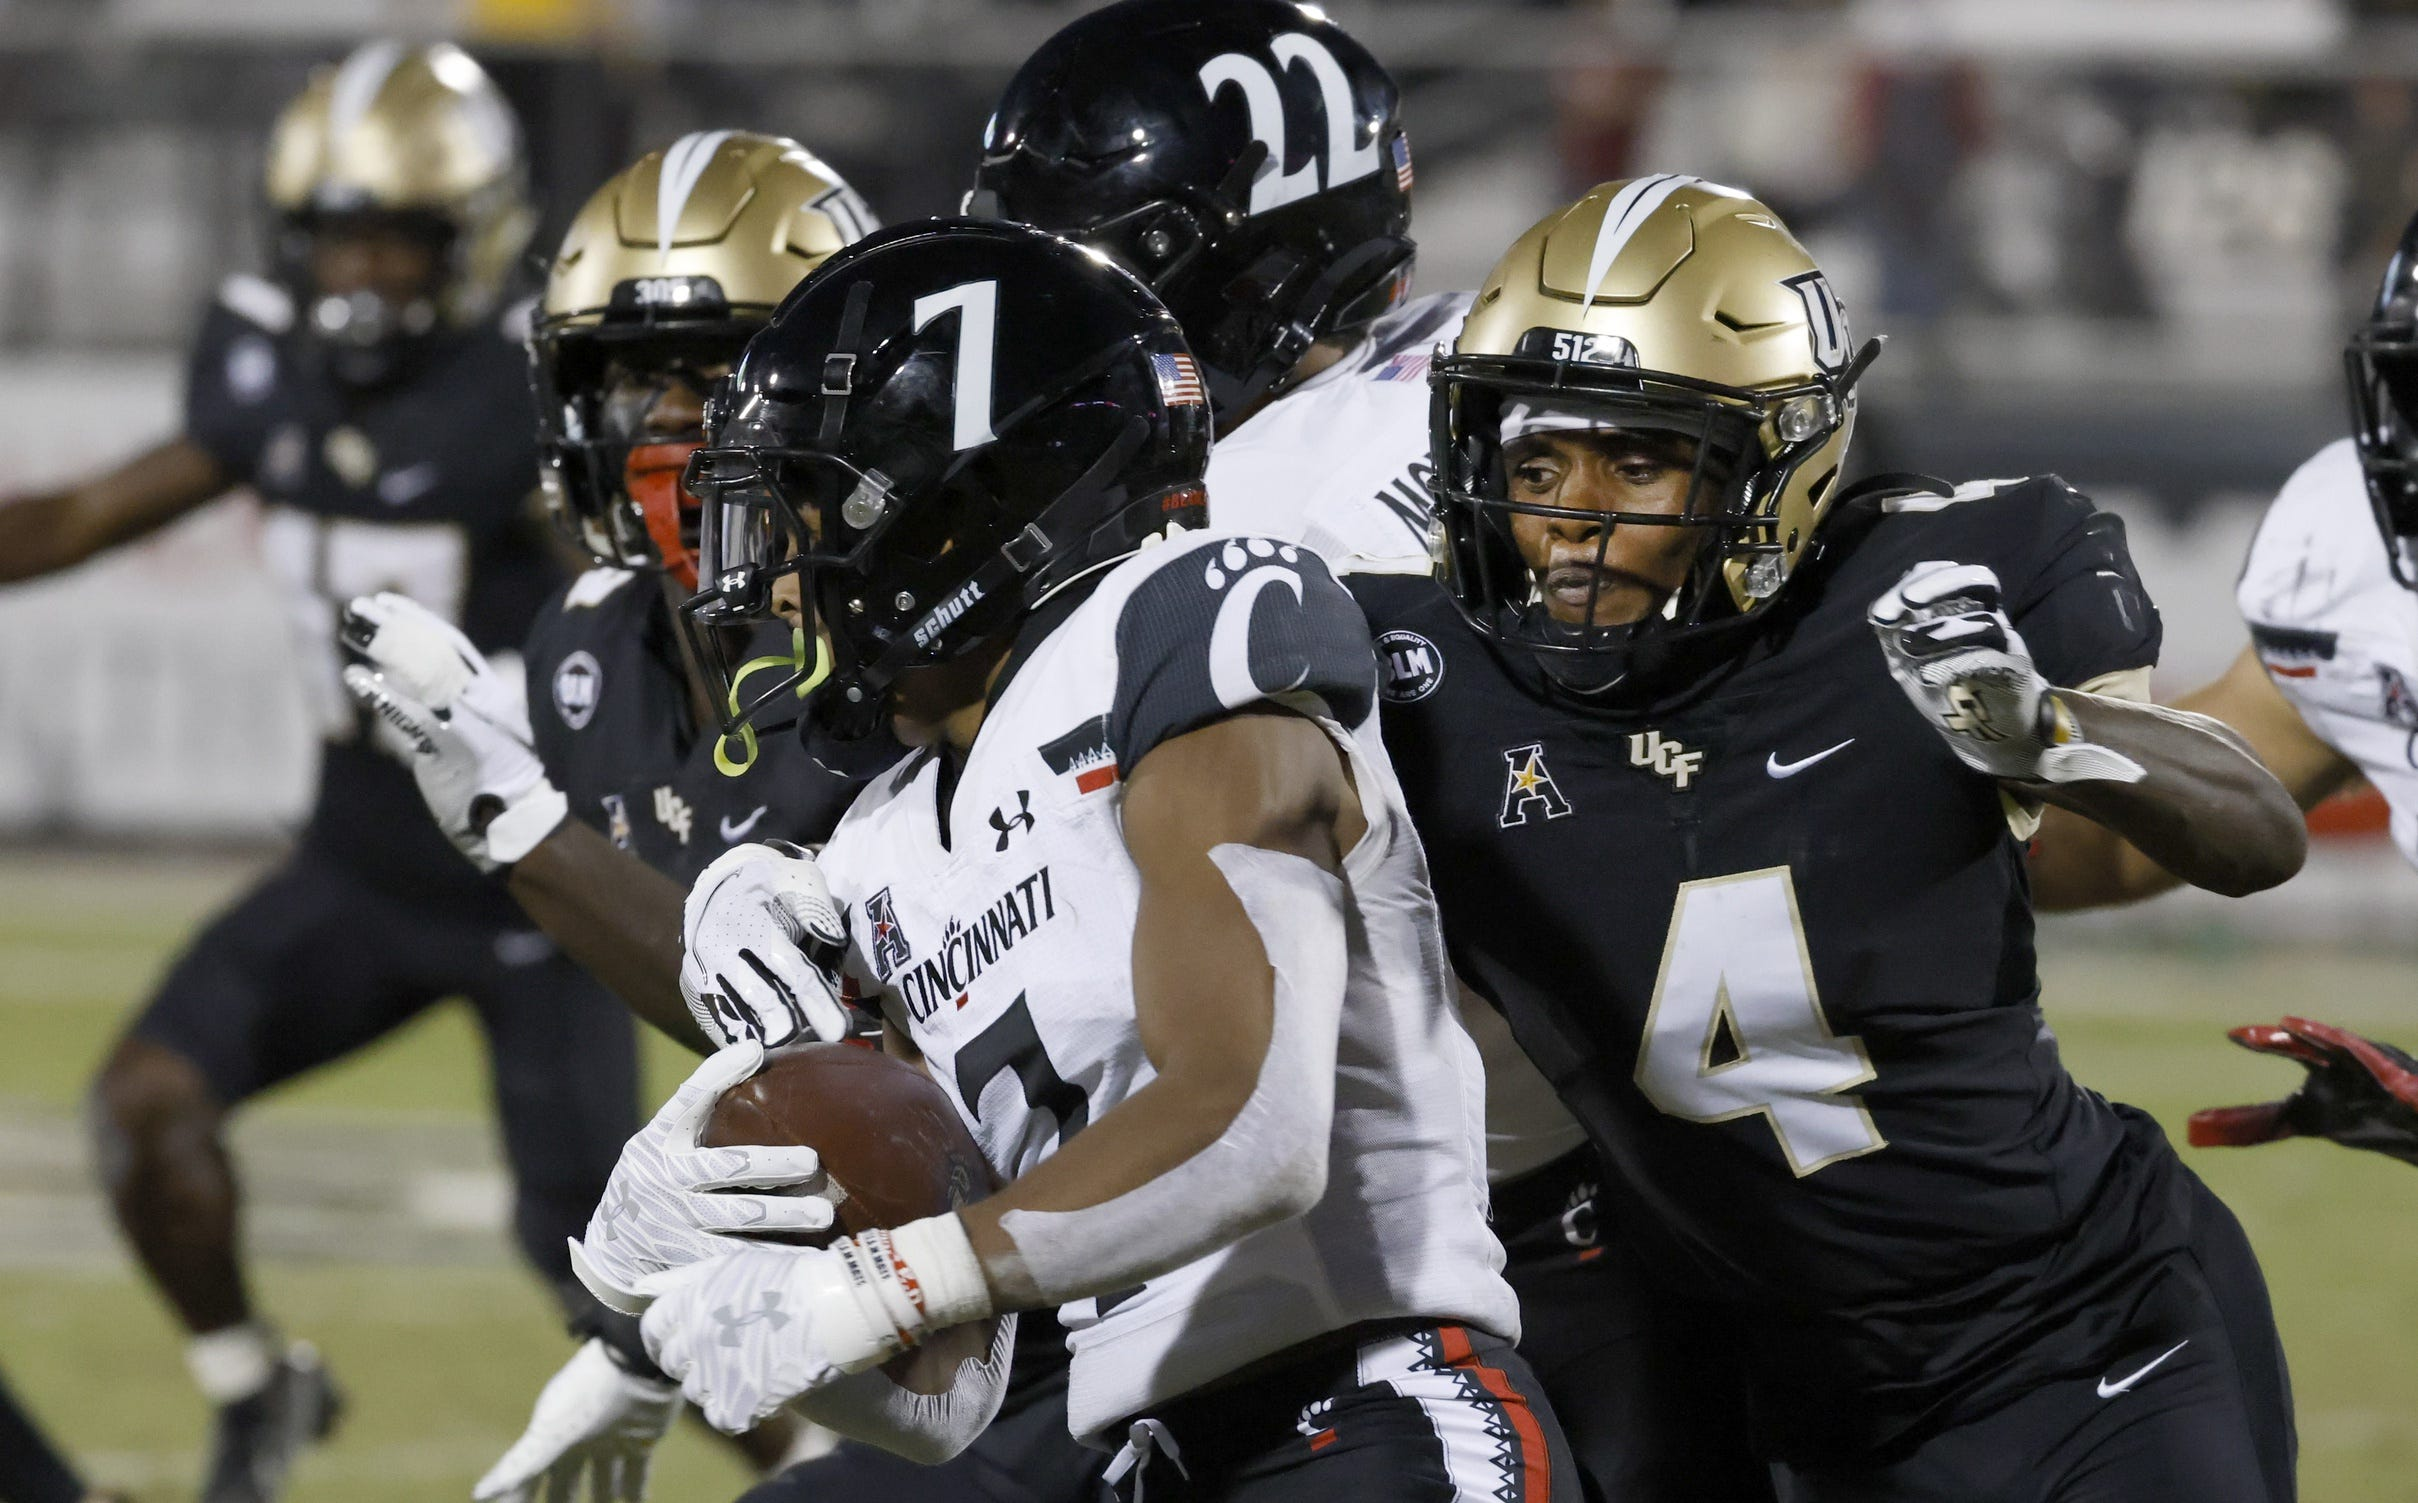 Scouting report: A look at the UCF Knights, the next opponent for the No. 3/4 UC Bearcats